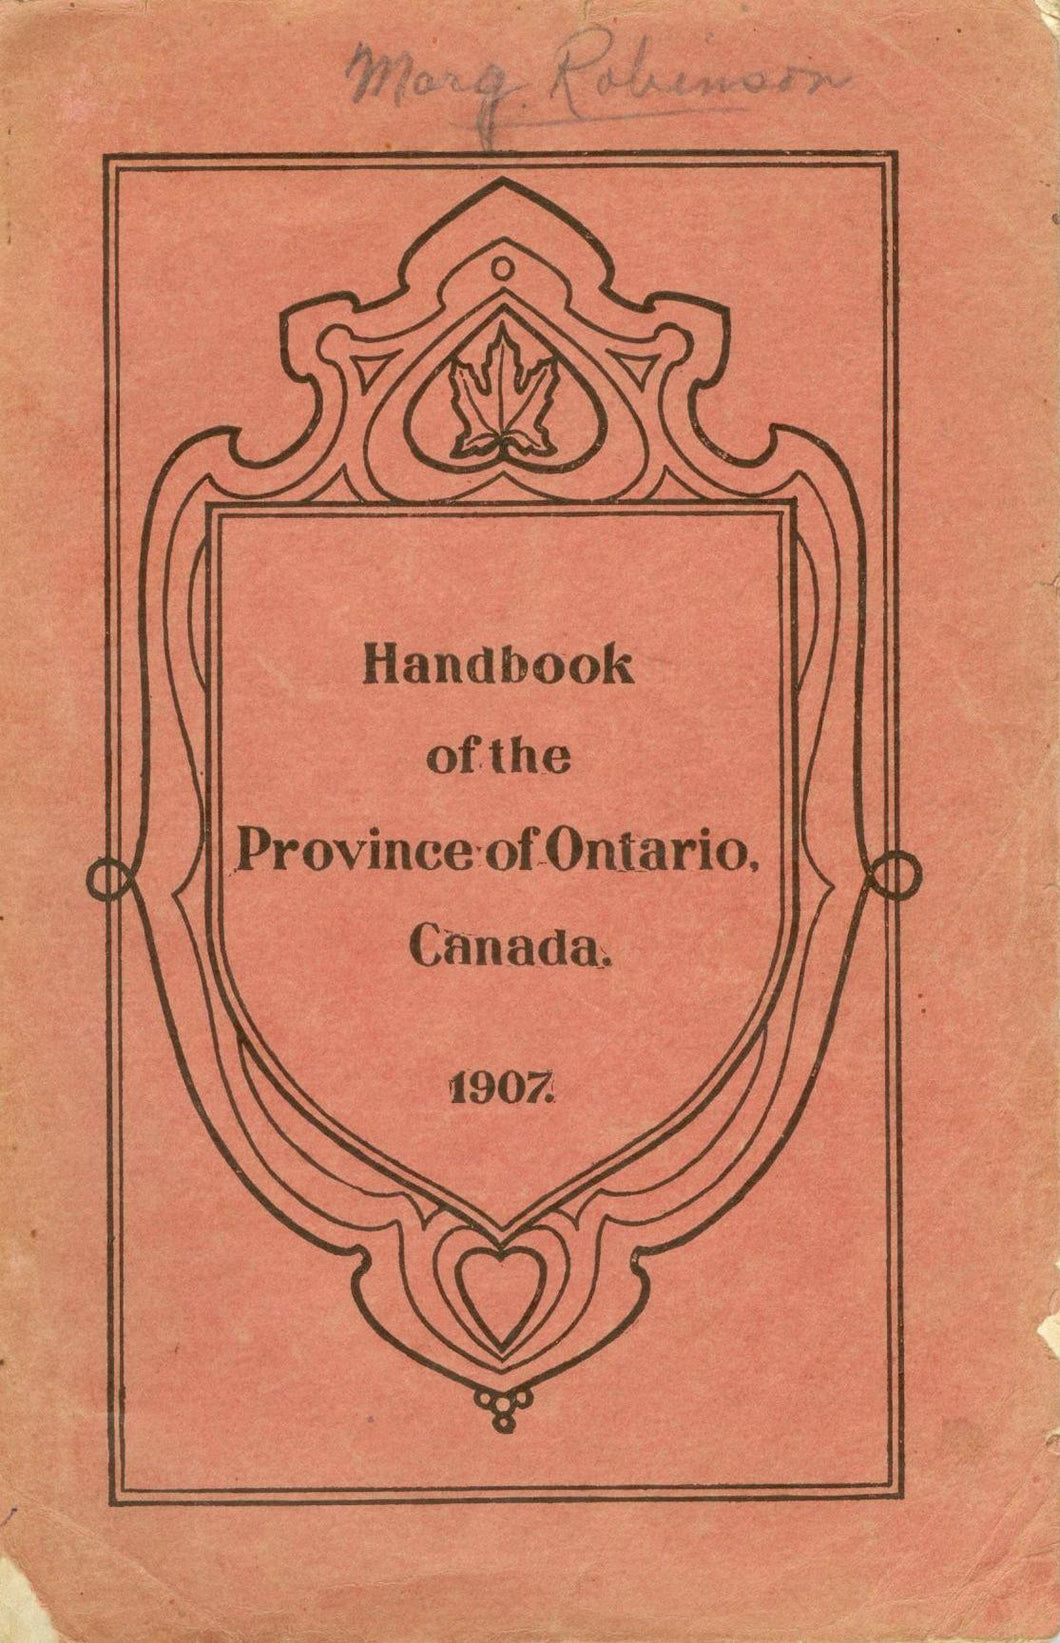 Handbook of the Province of Ontario Canada: Products Resources Development